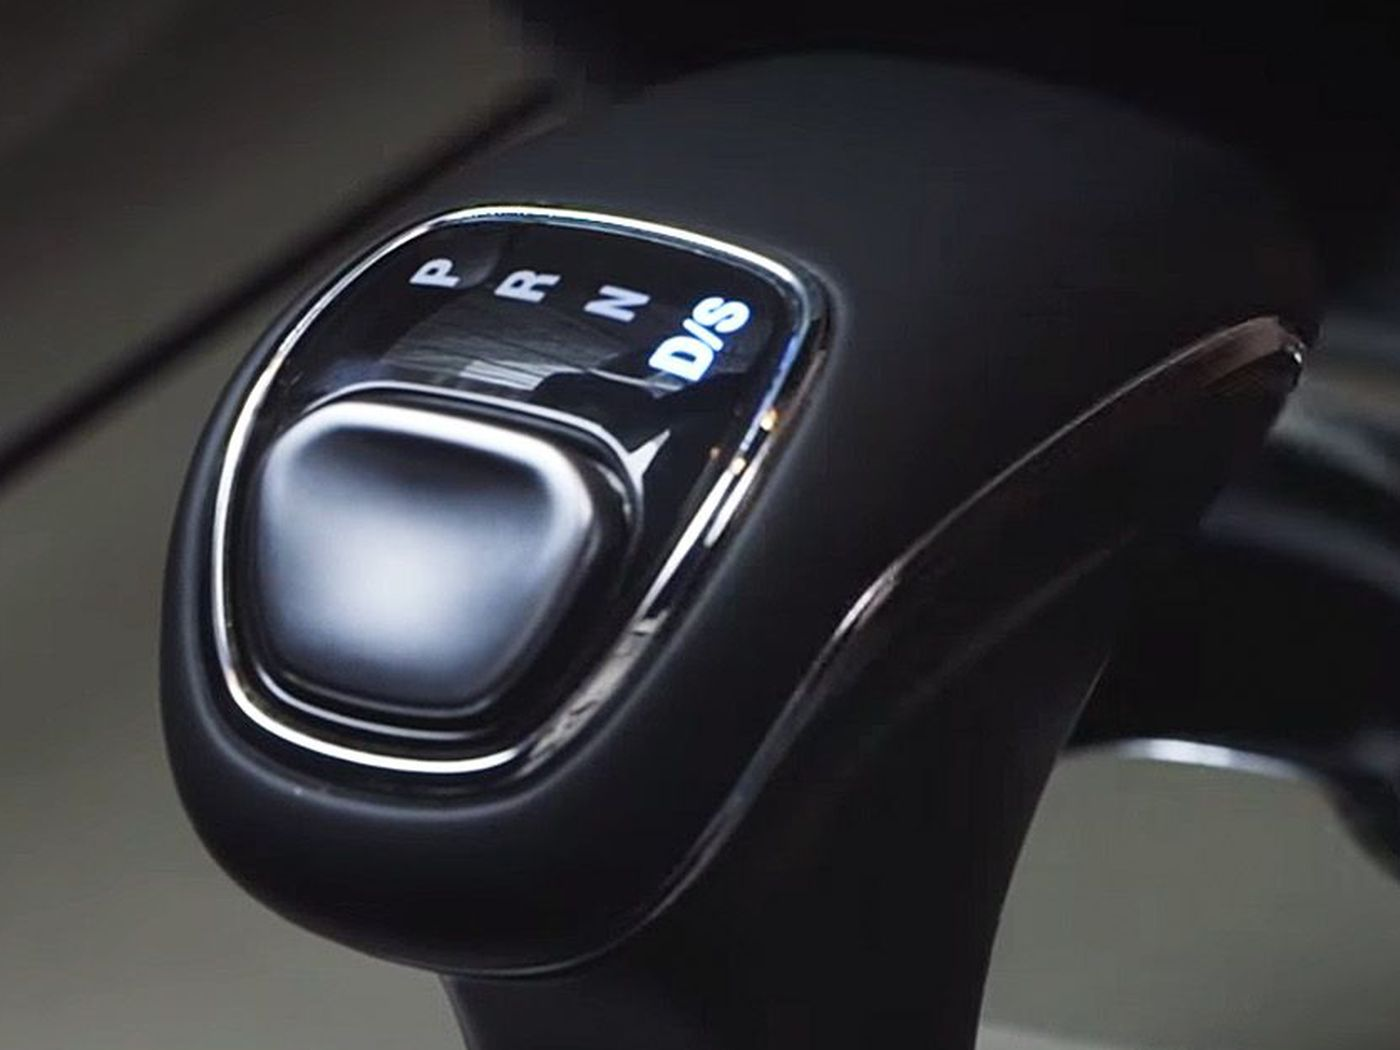 The Recalled Jeep Shifter Is Just Bad User Interface Design The Verge